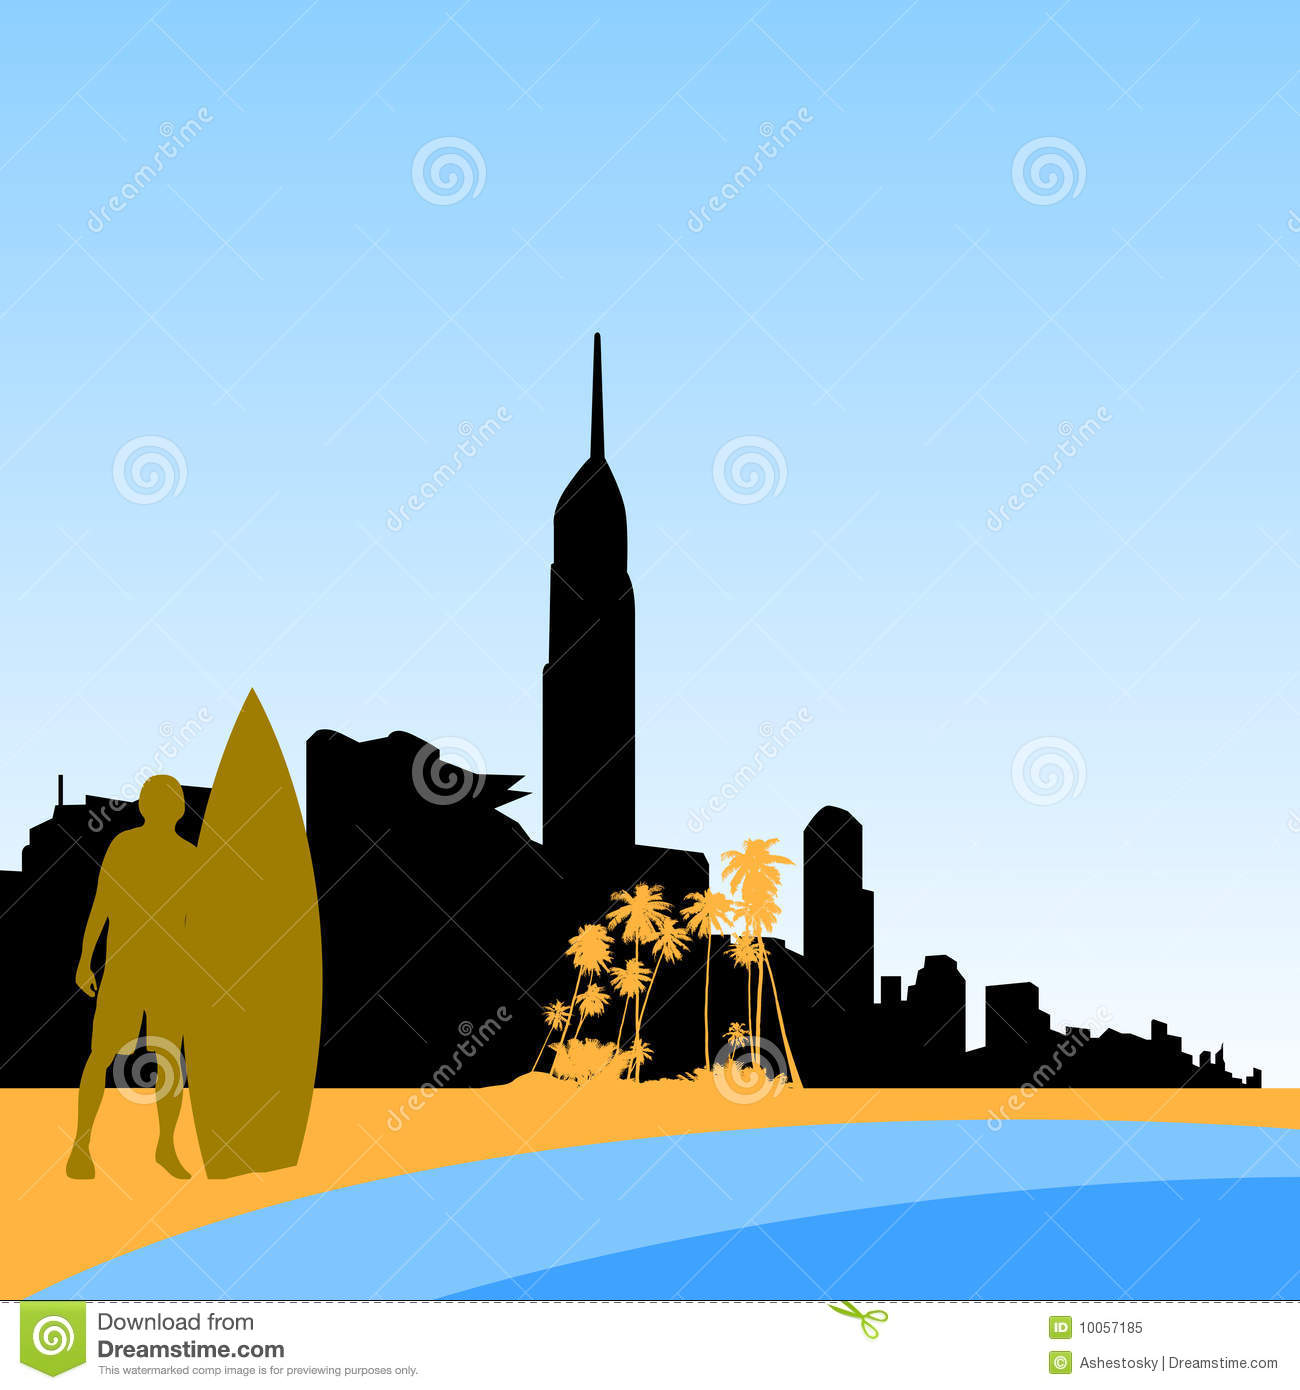 Gold Coast clipart #19, Download drawings